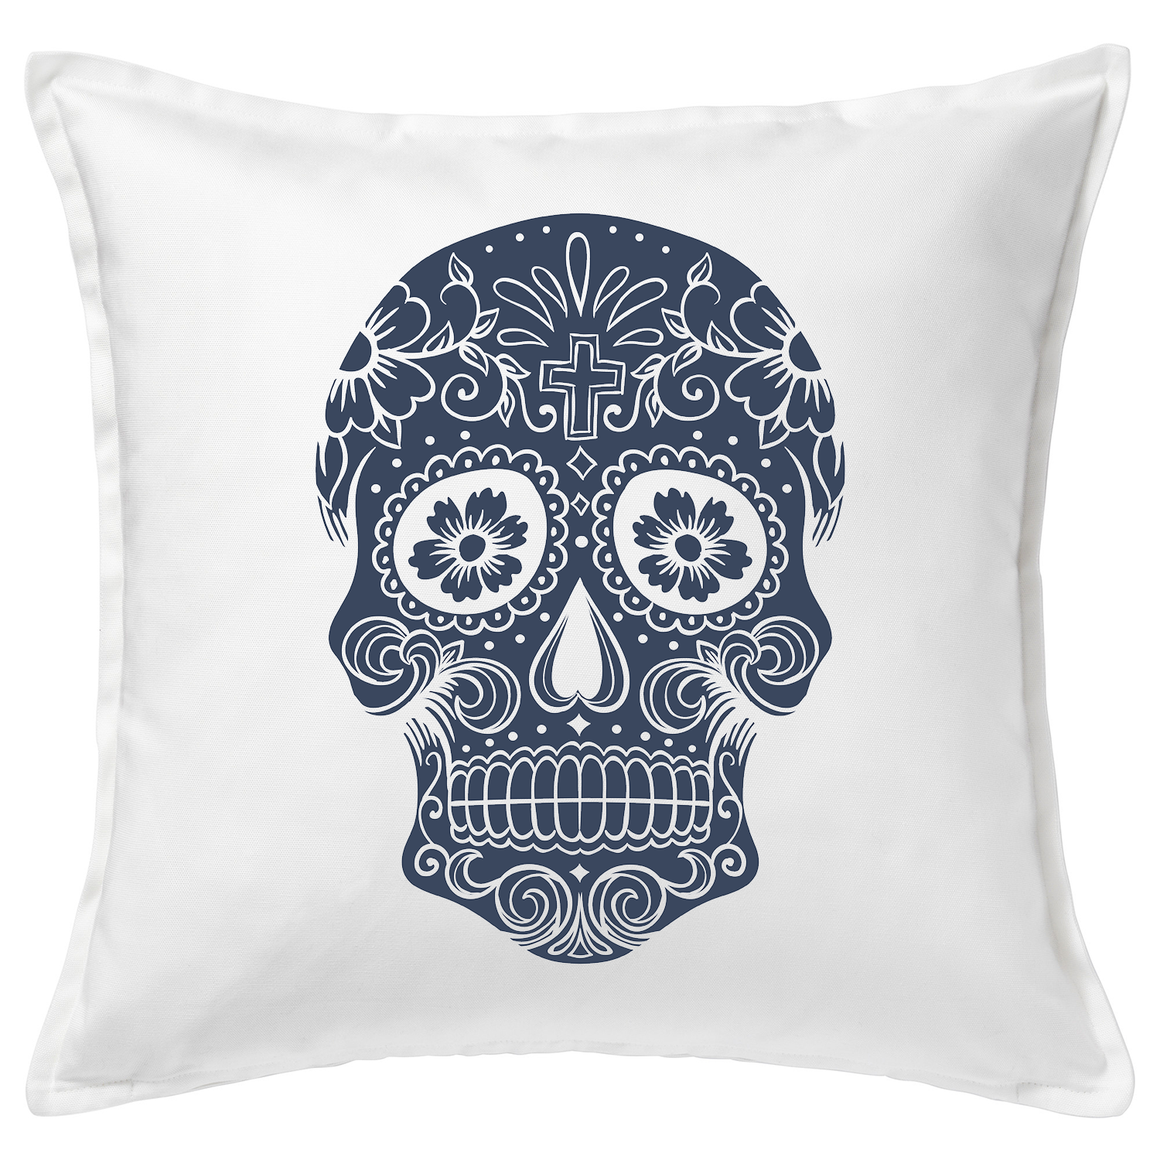 Denim Sugar Skull Cushion Cover